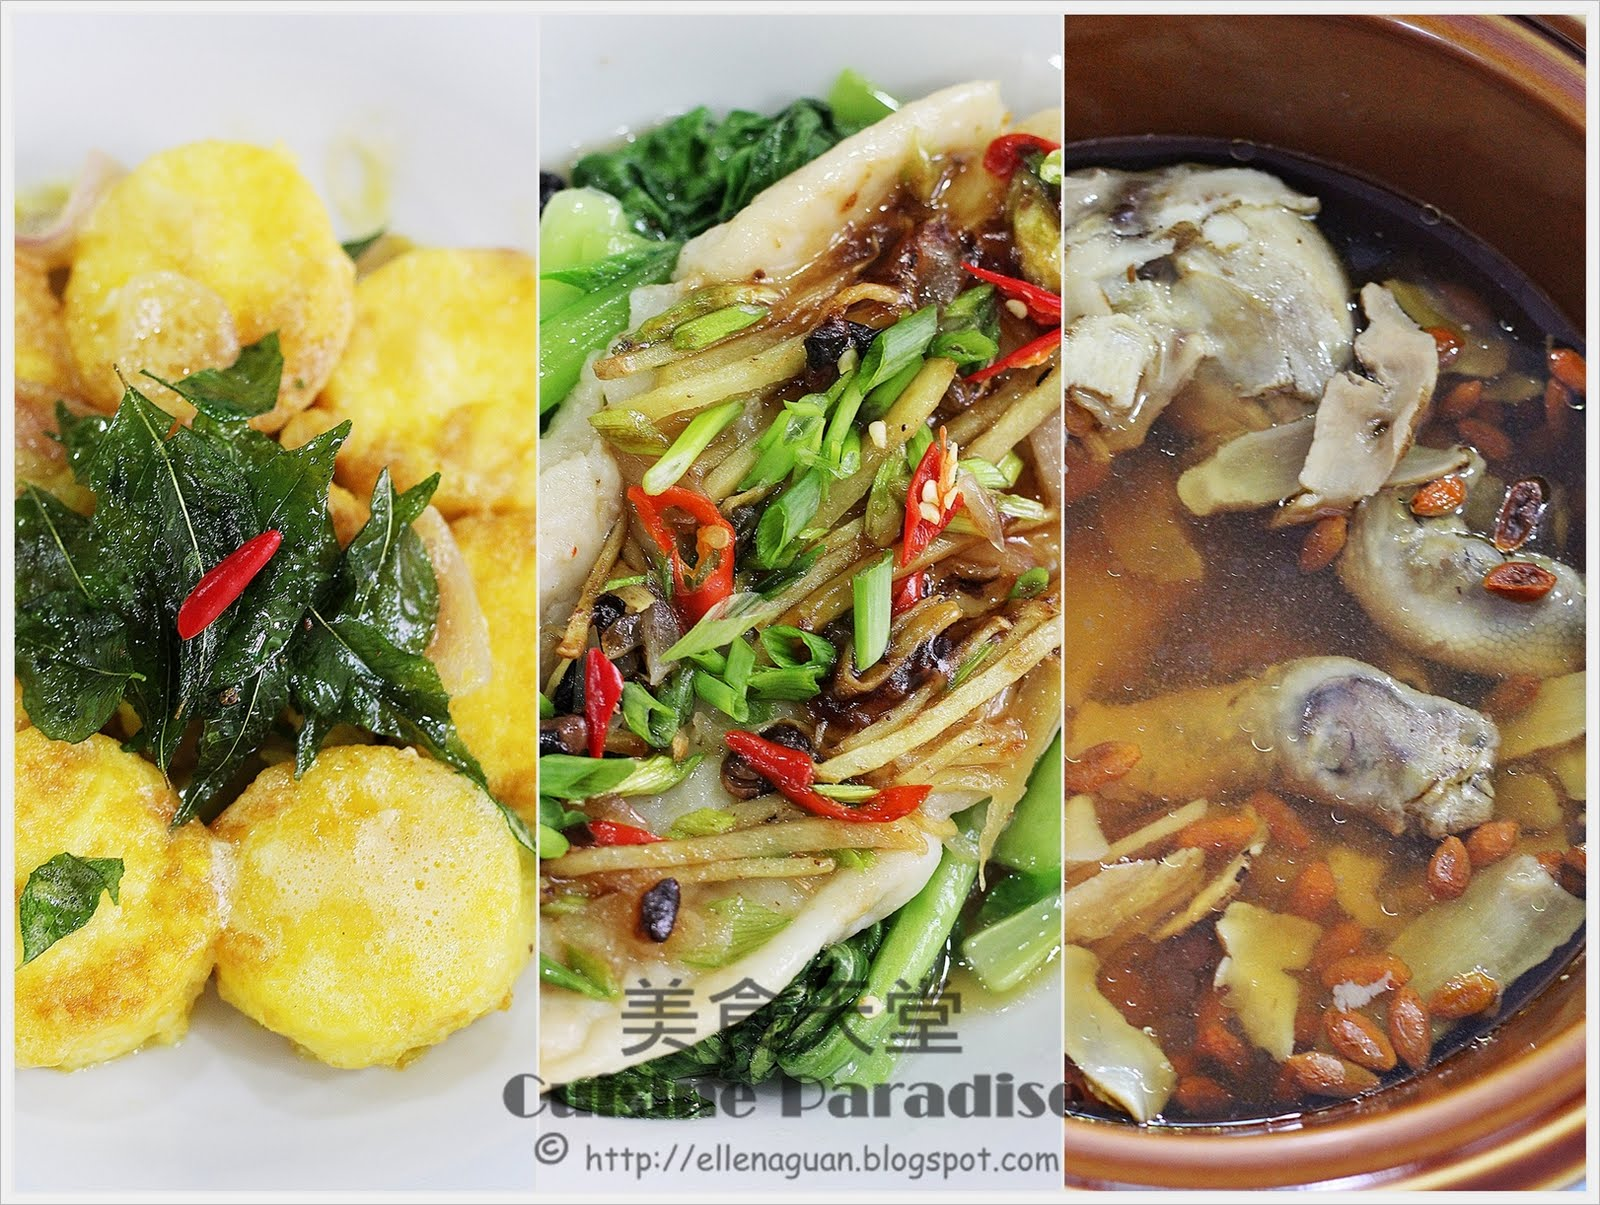 Blogspot Food Blog Cuisine Paradise Singapore Food Blog Recipes Reviews